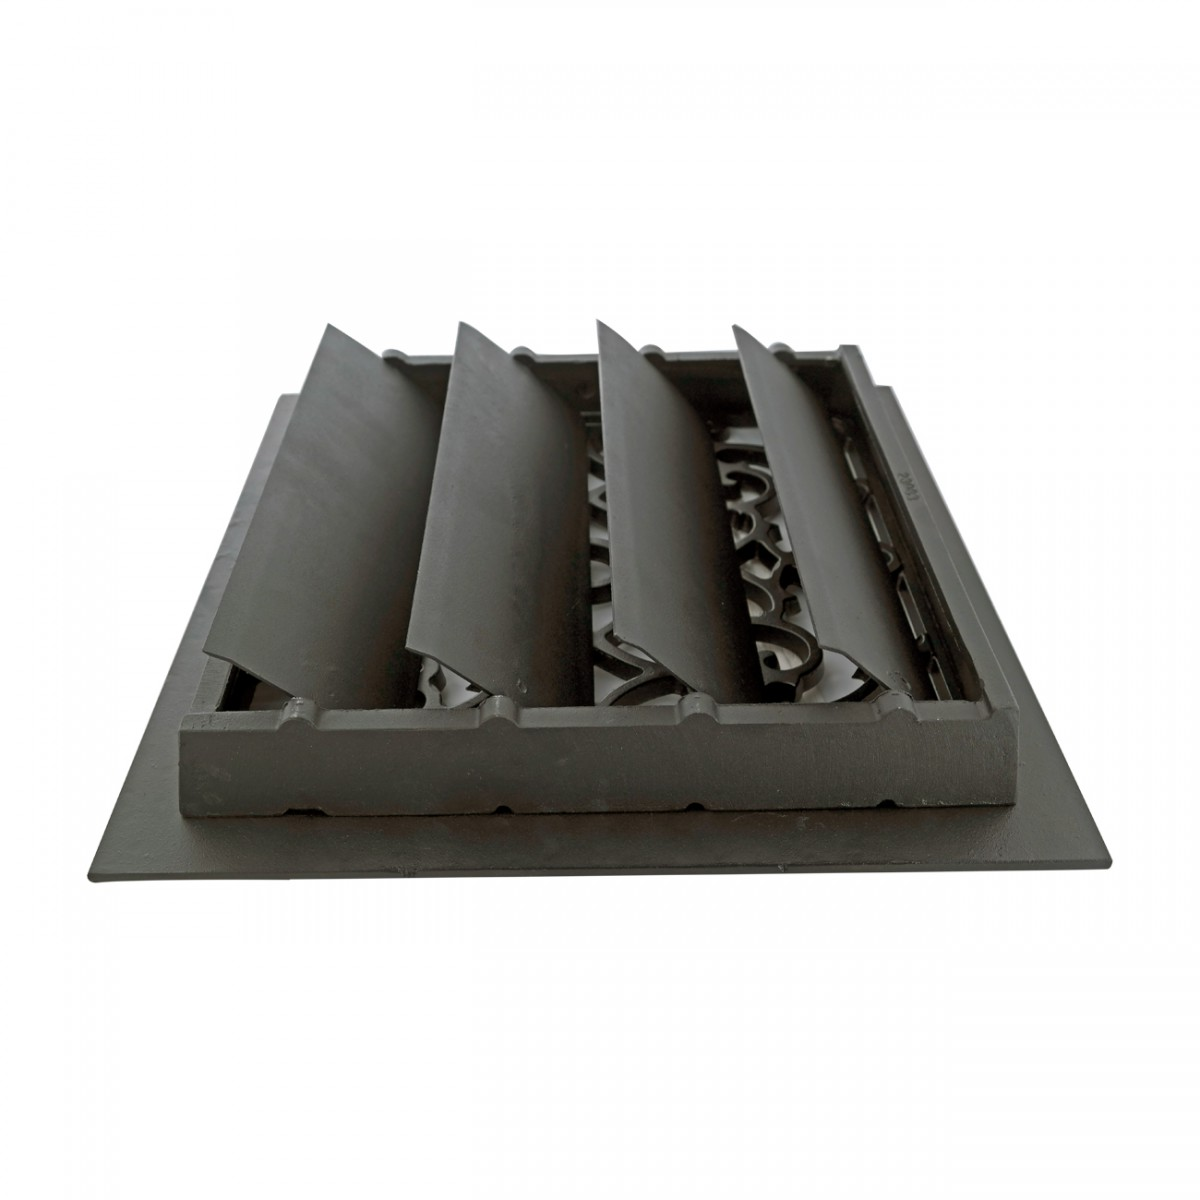 Floor Heat Register Louver Vent Victorian Cast 12 x 12 Duct Heat Register Floor Register Wall Registers